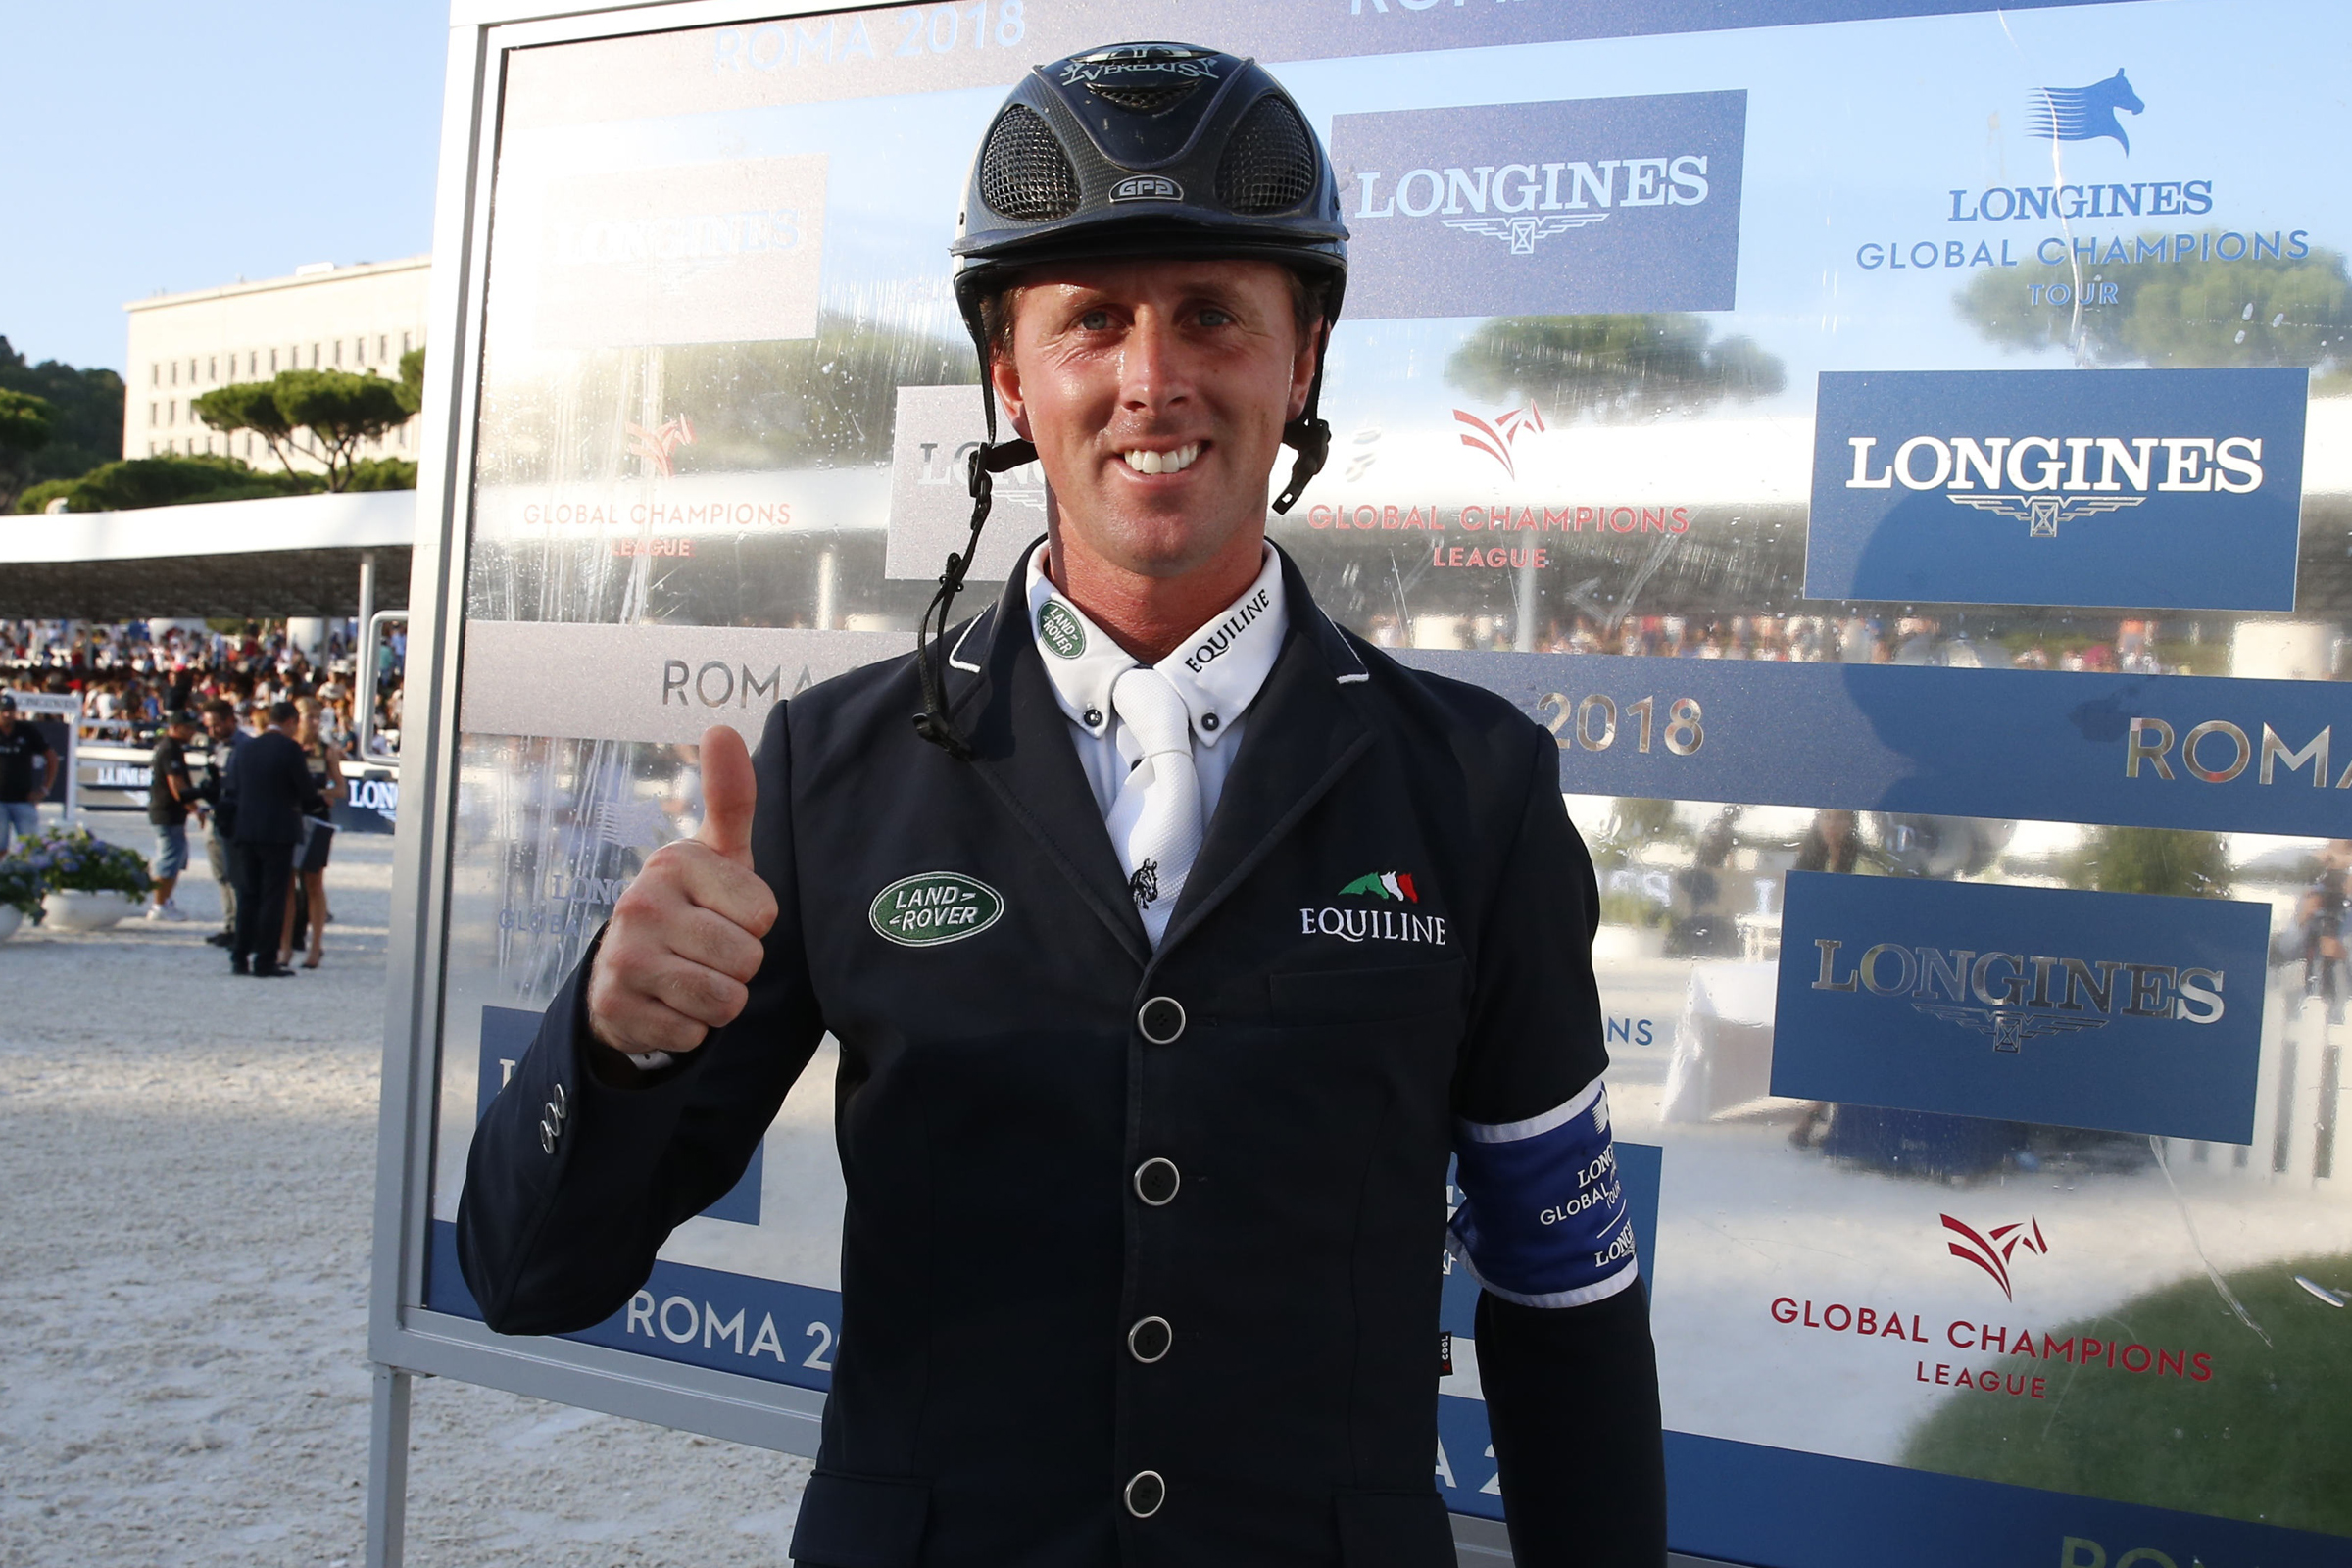 Ben Maher Triumphs In The Lgct Grand Prix Of Rome